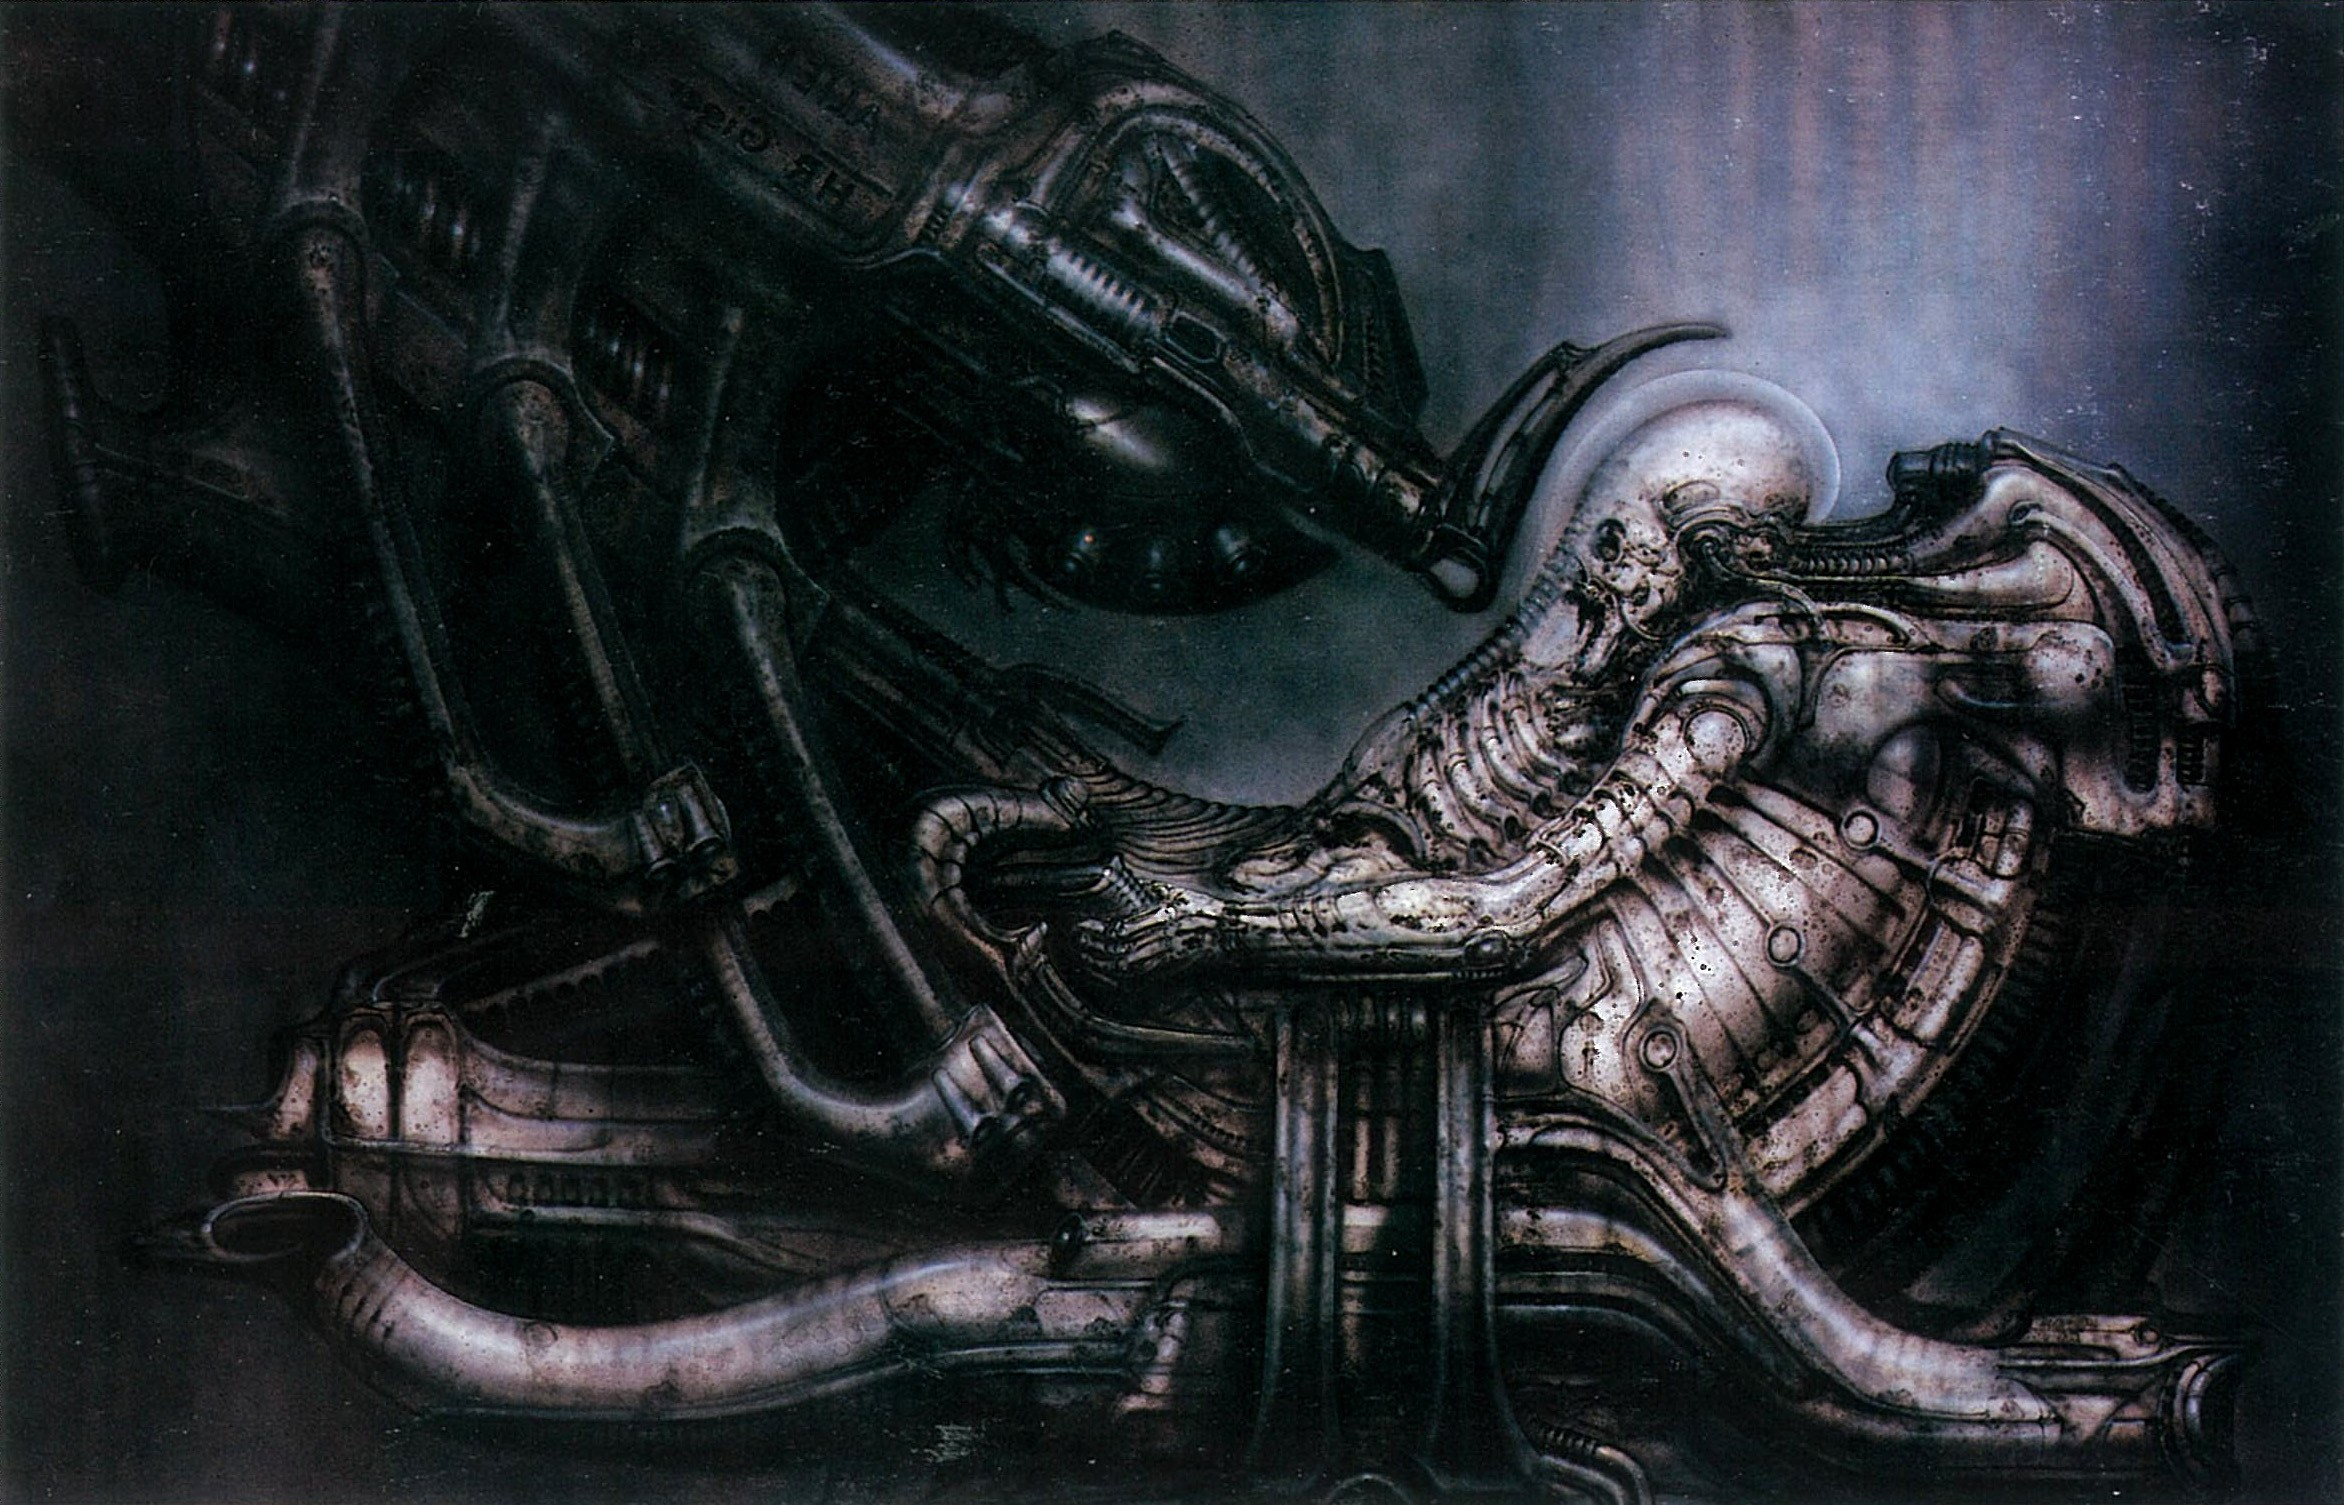 h r gieger Hrgiger 53,834 likes 6,582 talking about this this is a fanpage for donation,paypal: ken-zahn@webde all copyright goes to hrgiger der.